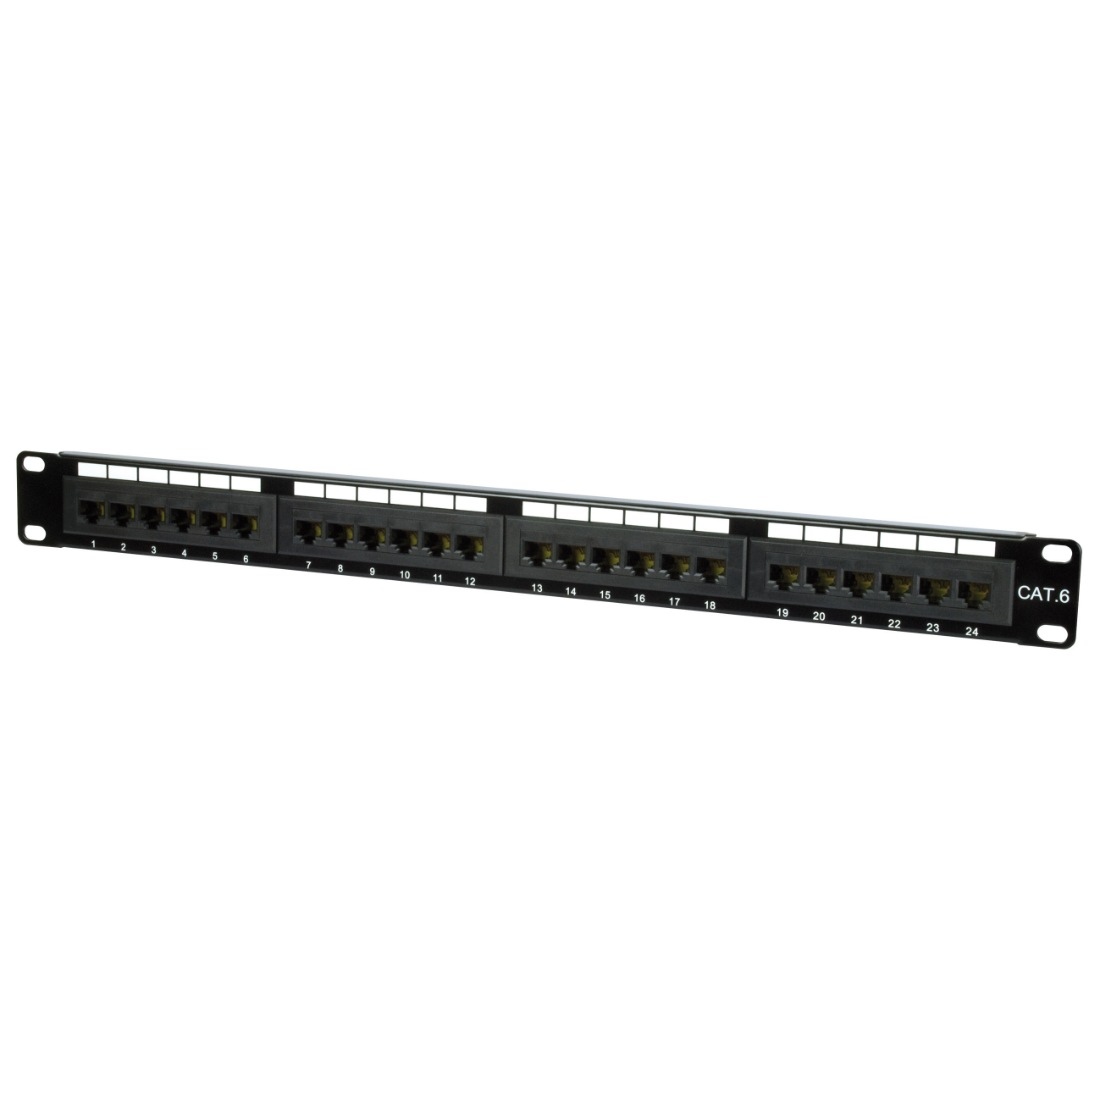 cat 6 patch panel cable management